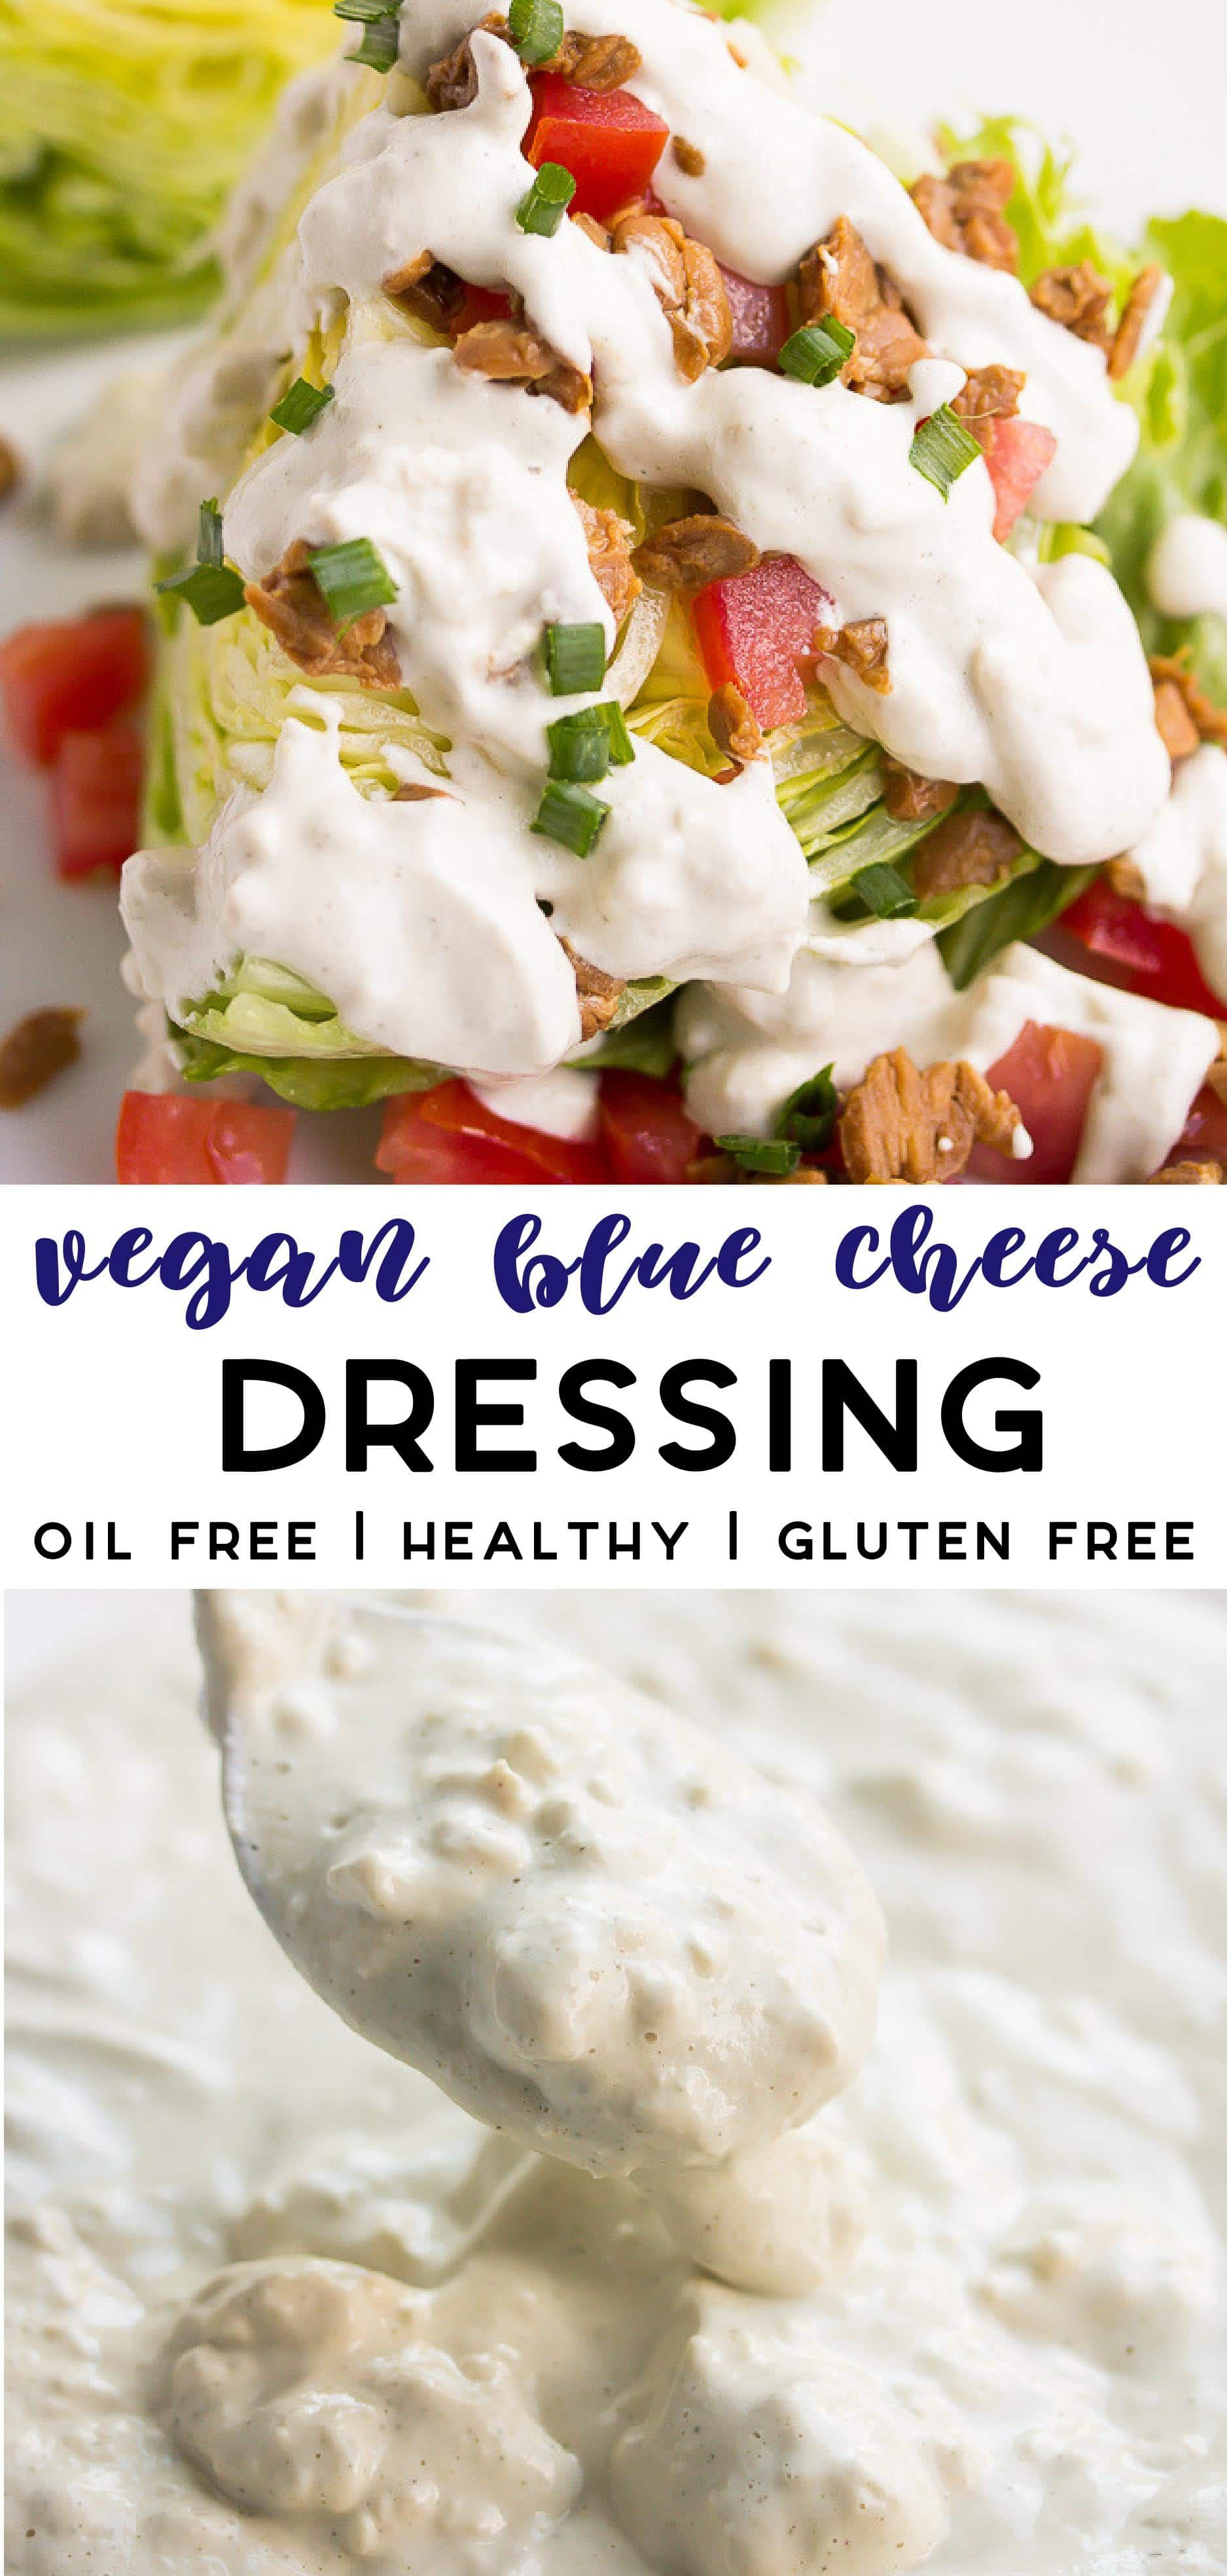 Healthy Vegan Blue Cheese Dressing Or Dip That Is Creamy With Crumbles Perfect For Wedge Salads Vegan Blue Cheese Dressing Blue Cheese Dressing Blue Cheese